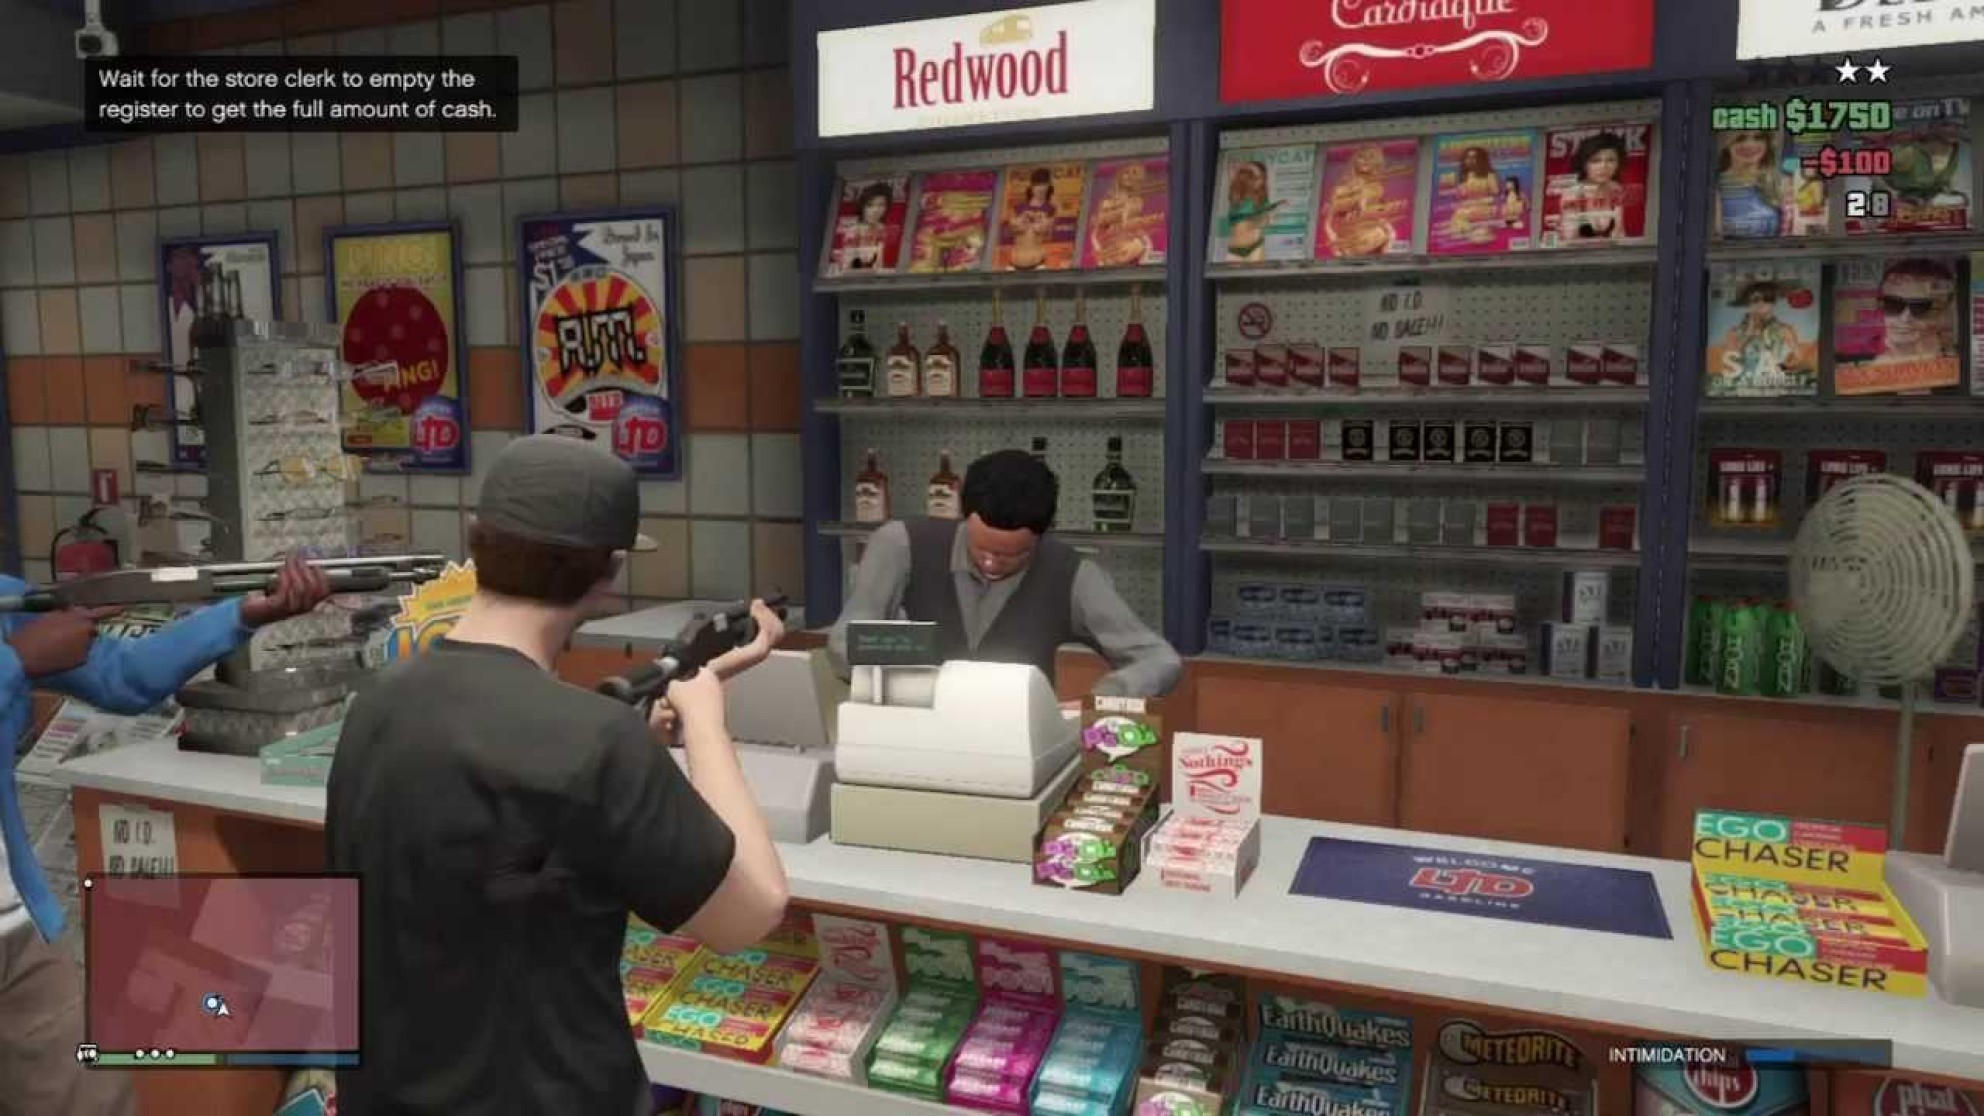 GTA 5 - Stores and Places you can rob